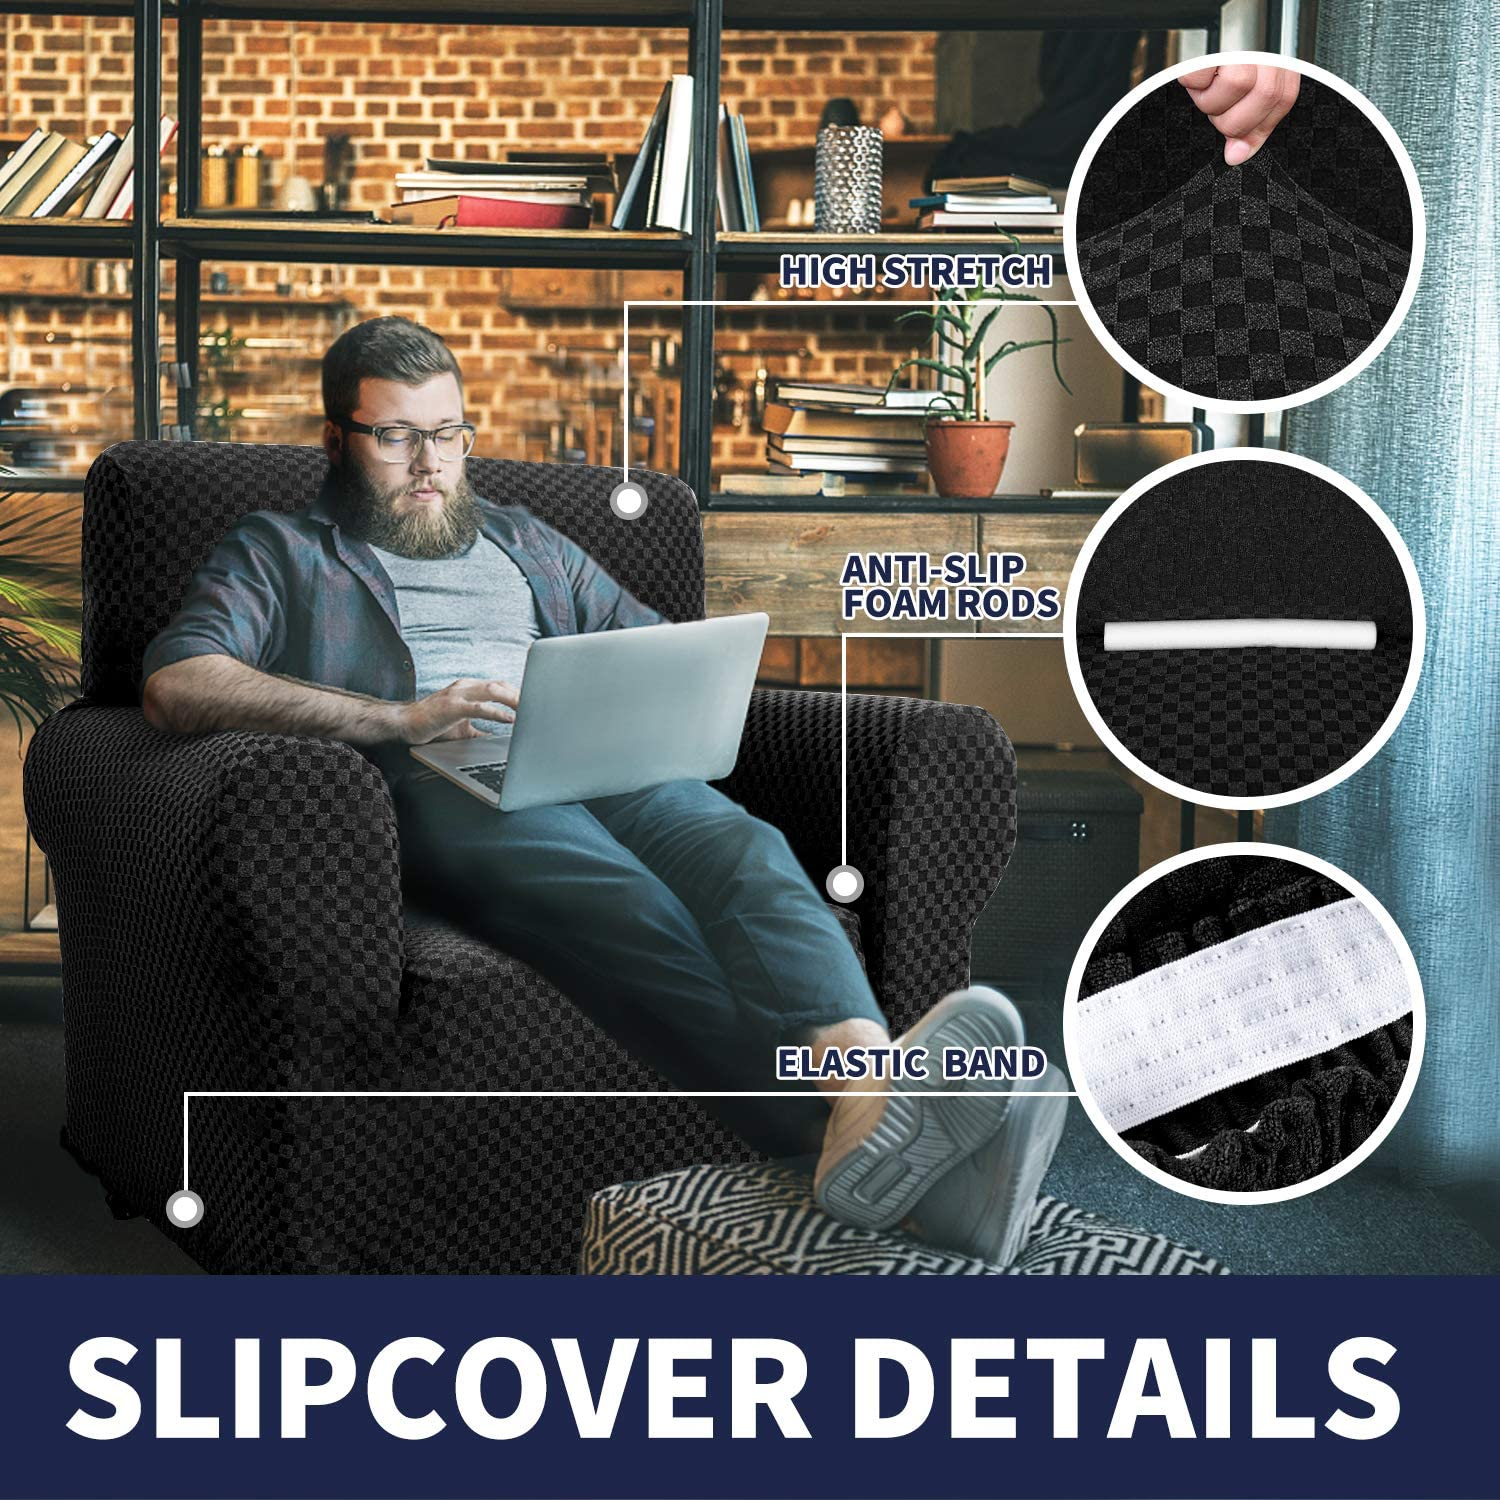 Chelzen Chair Covers for Living Room Innovative Double-Color Chair Slipcovers with Arms High Stretch Spandex Couch Protector Pet Dog Sofa Armchair Slip Cover (Chair, Charcoal Black Checkered): Home & Kitchen